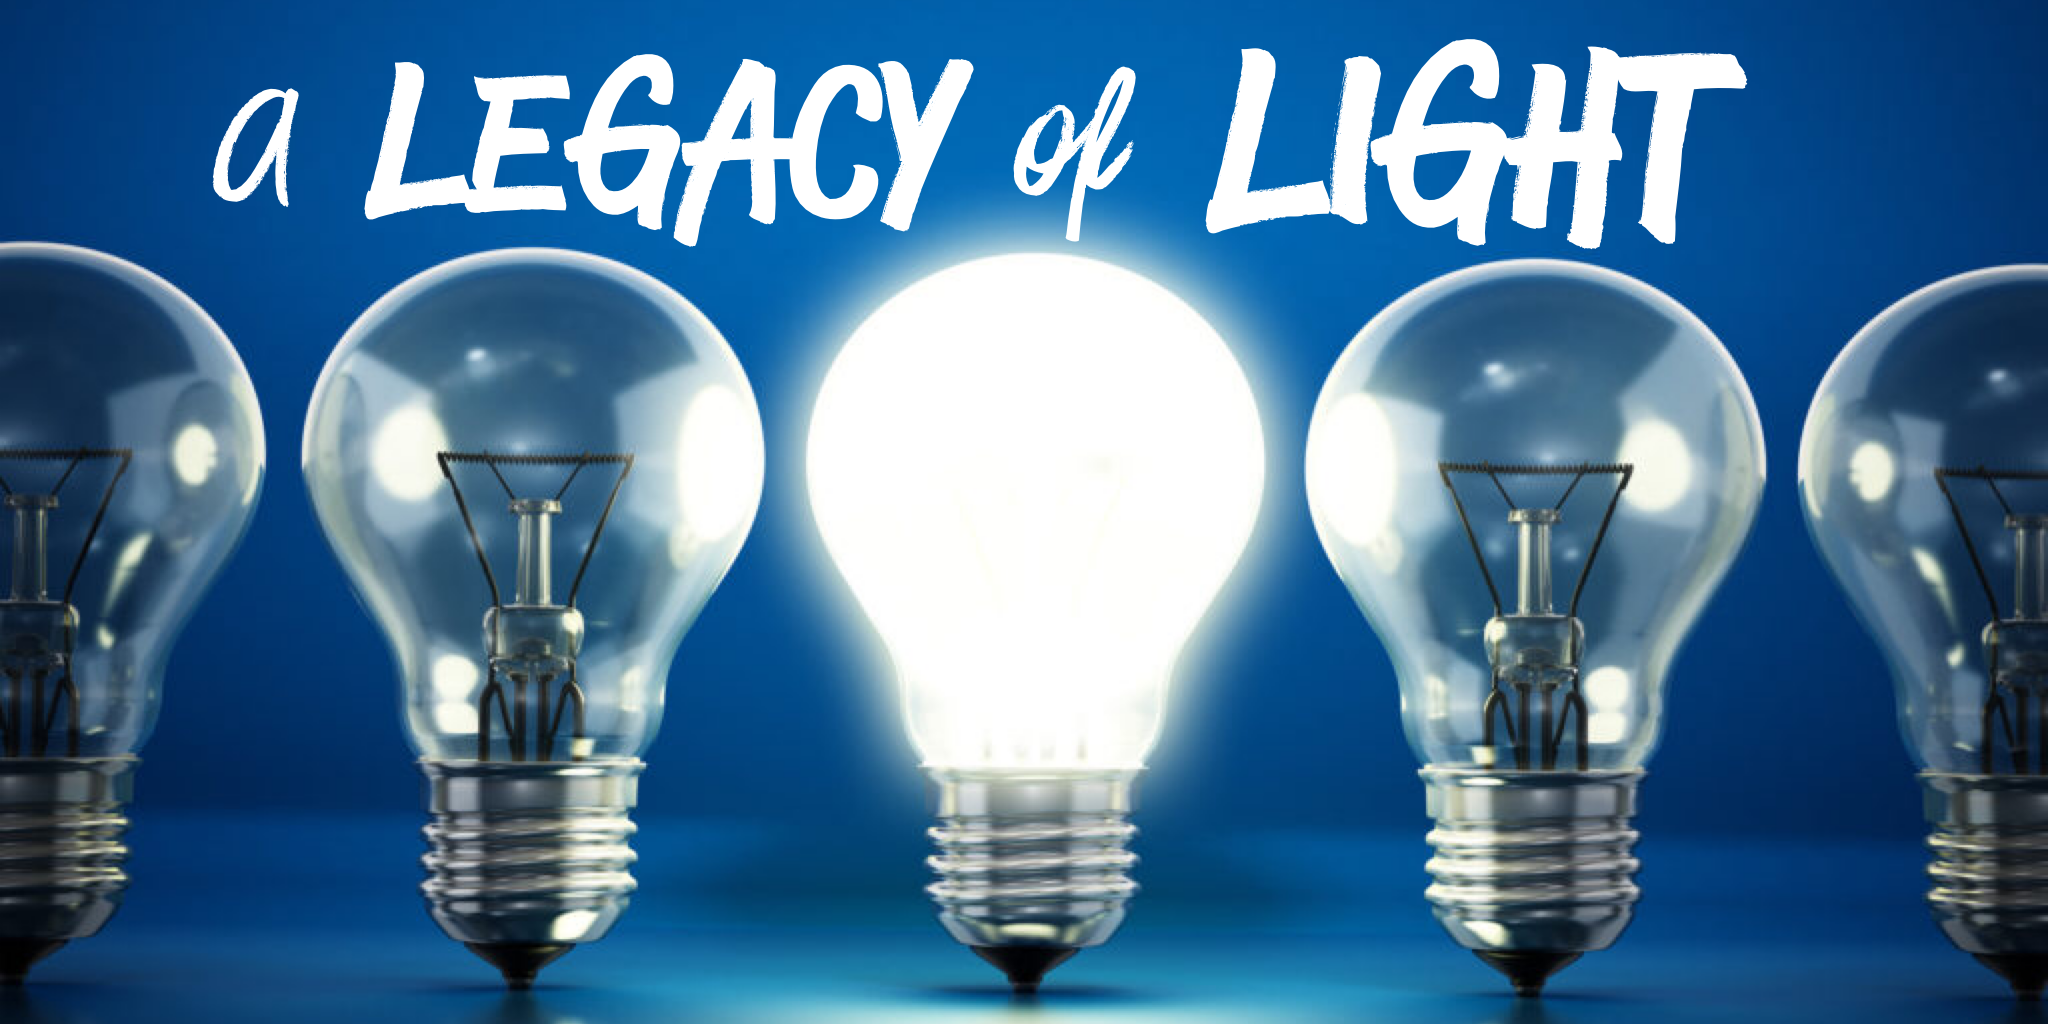 A Legacy of Light Image